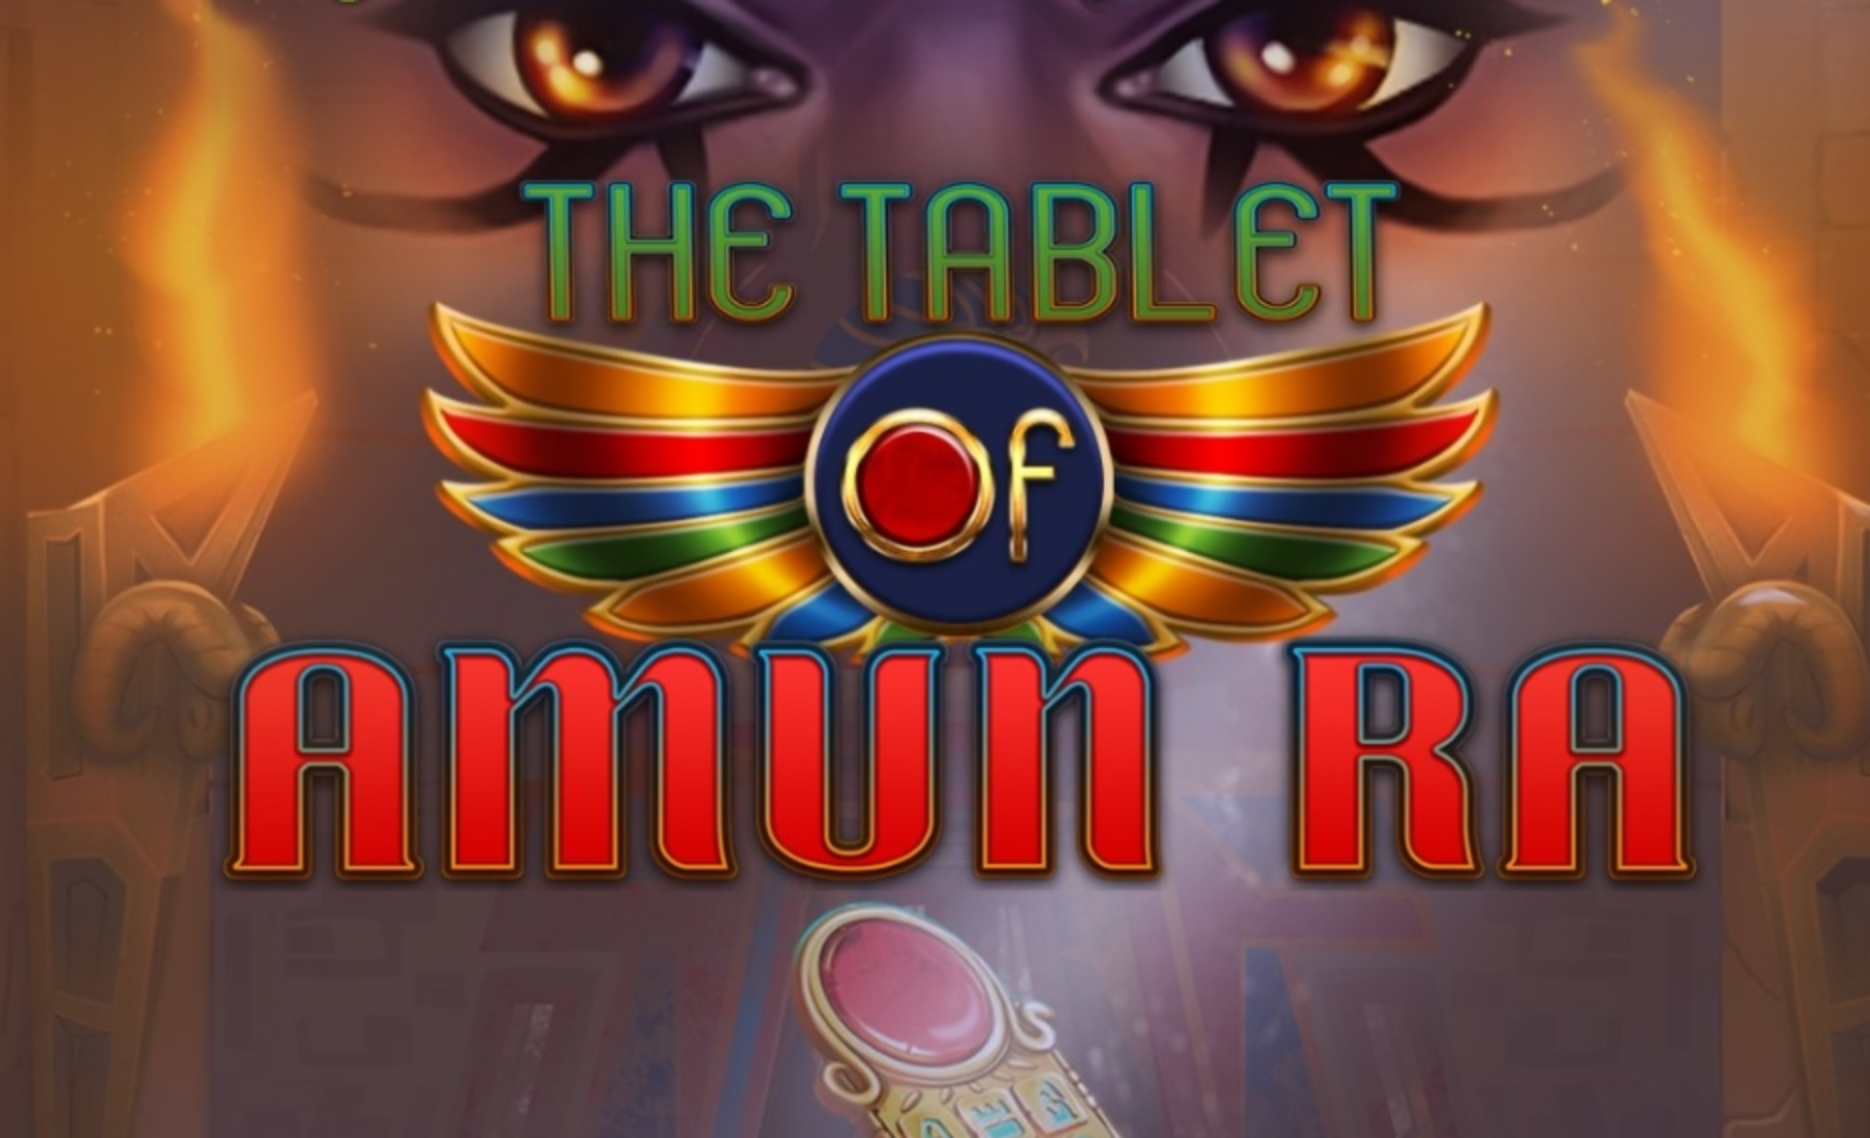 The The Tablet of Amun Ra Online Slot Demo Game by HungryBear